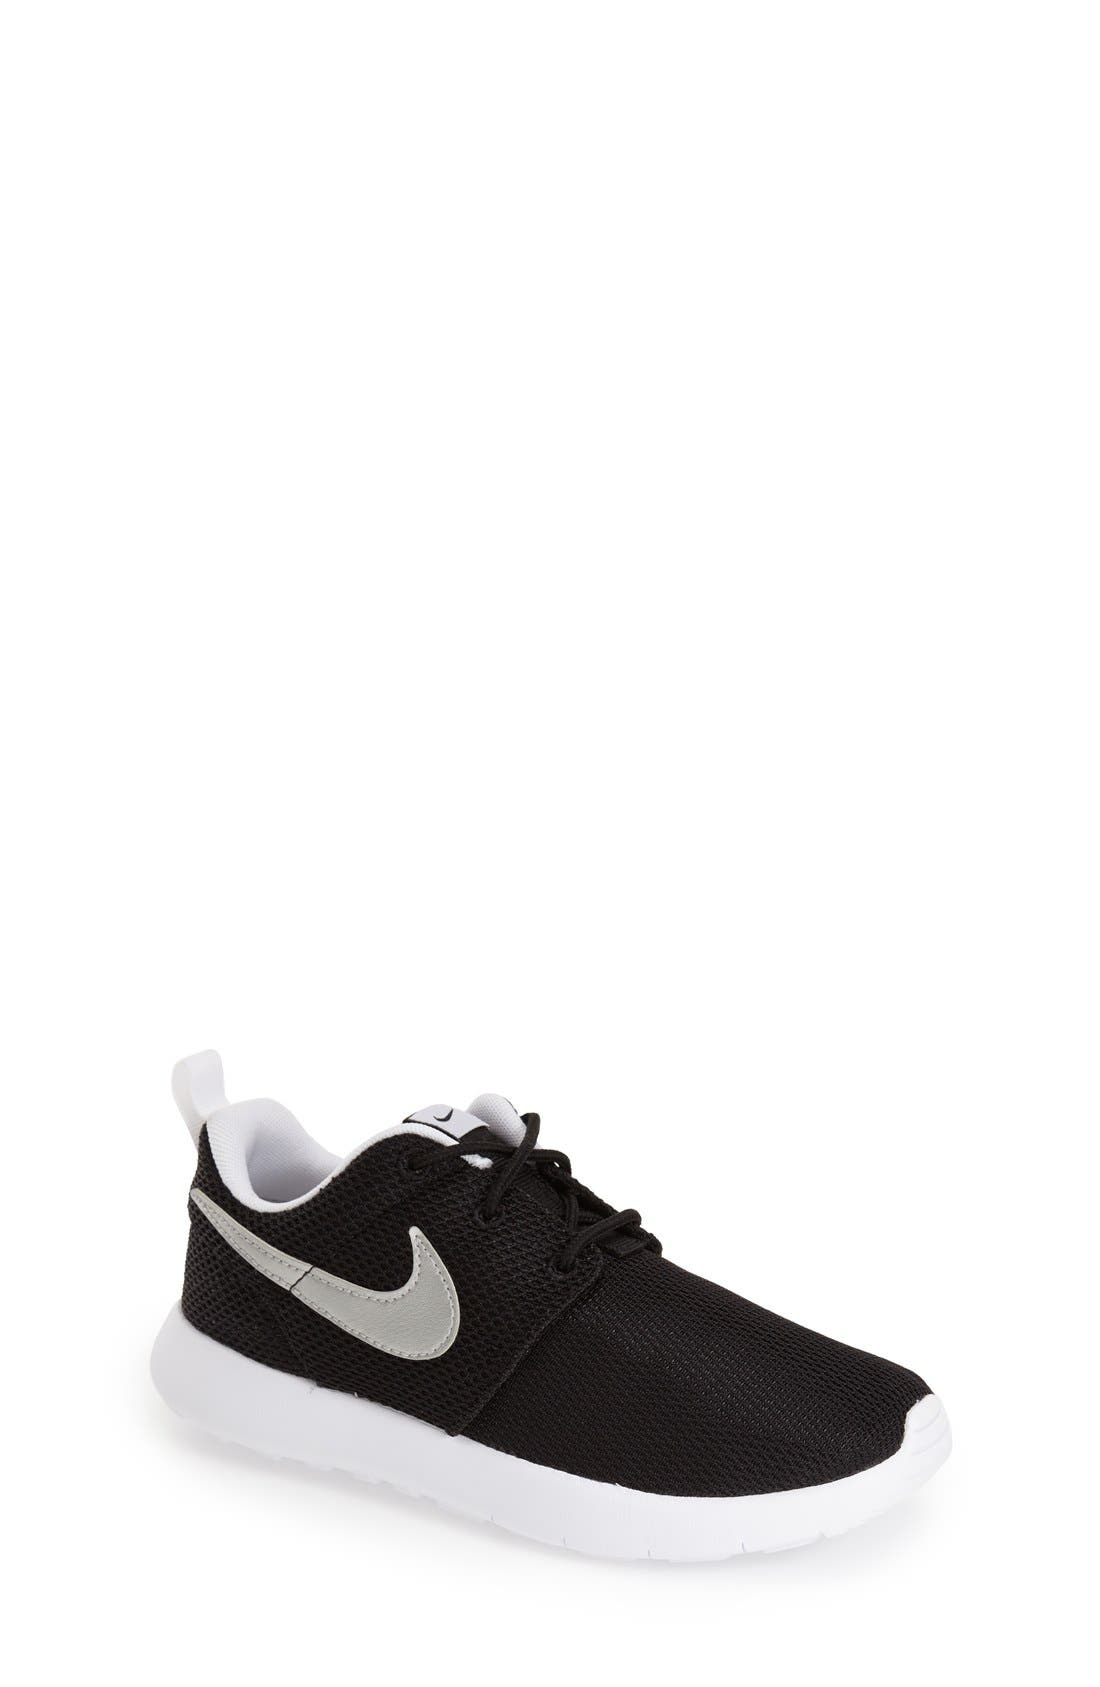 Roshe Run Sneaker,                             Main thumbnail 1, color,